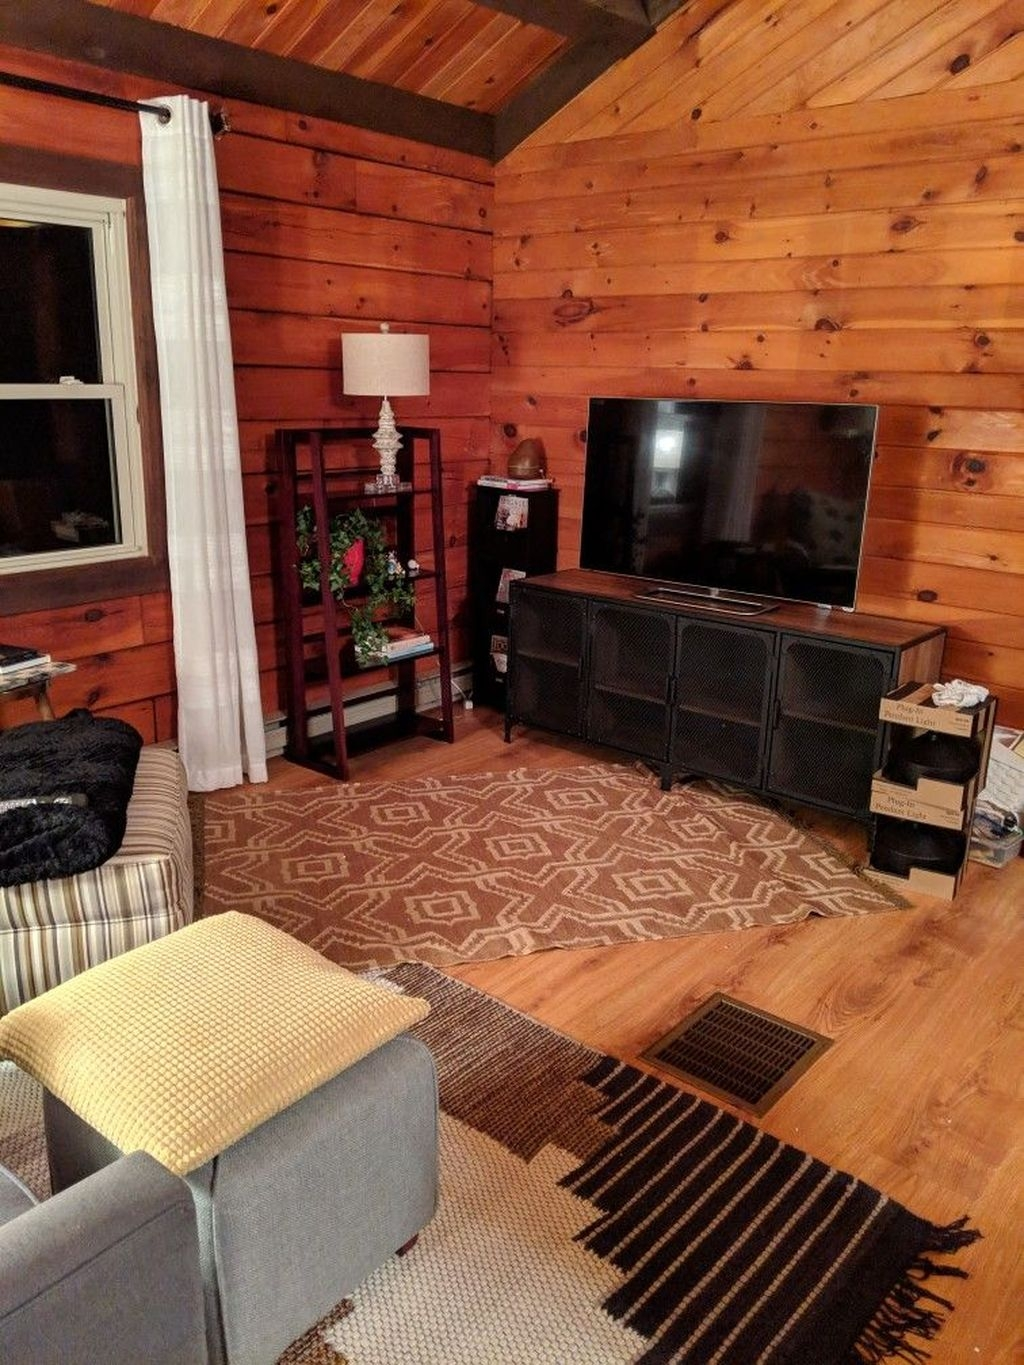 Affordable Arranging Things Ideas In Home For Perfect Order 45